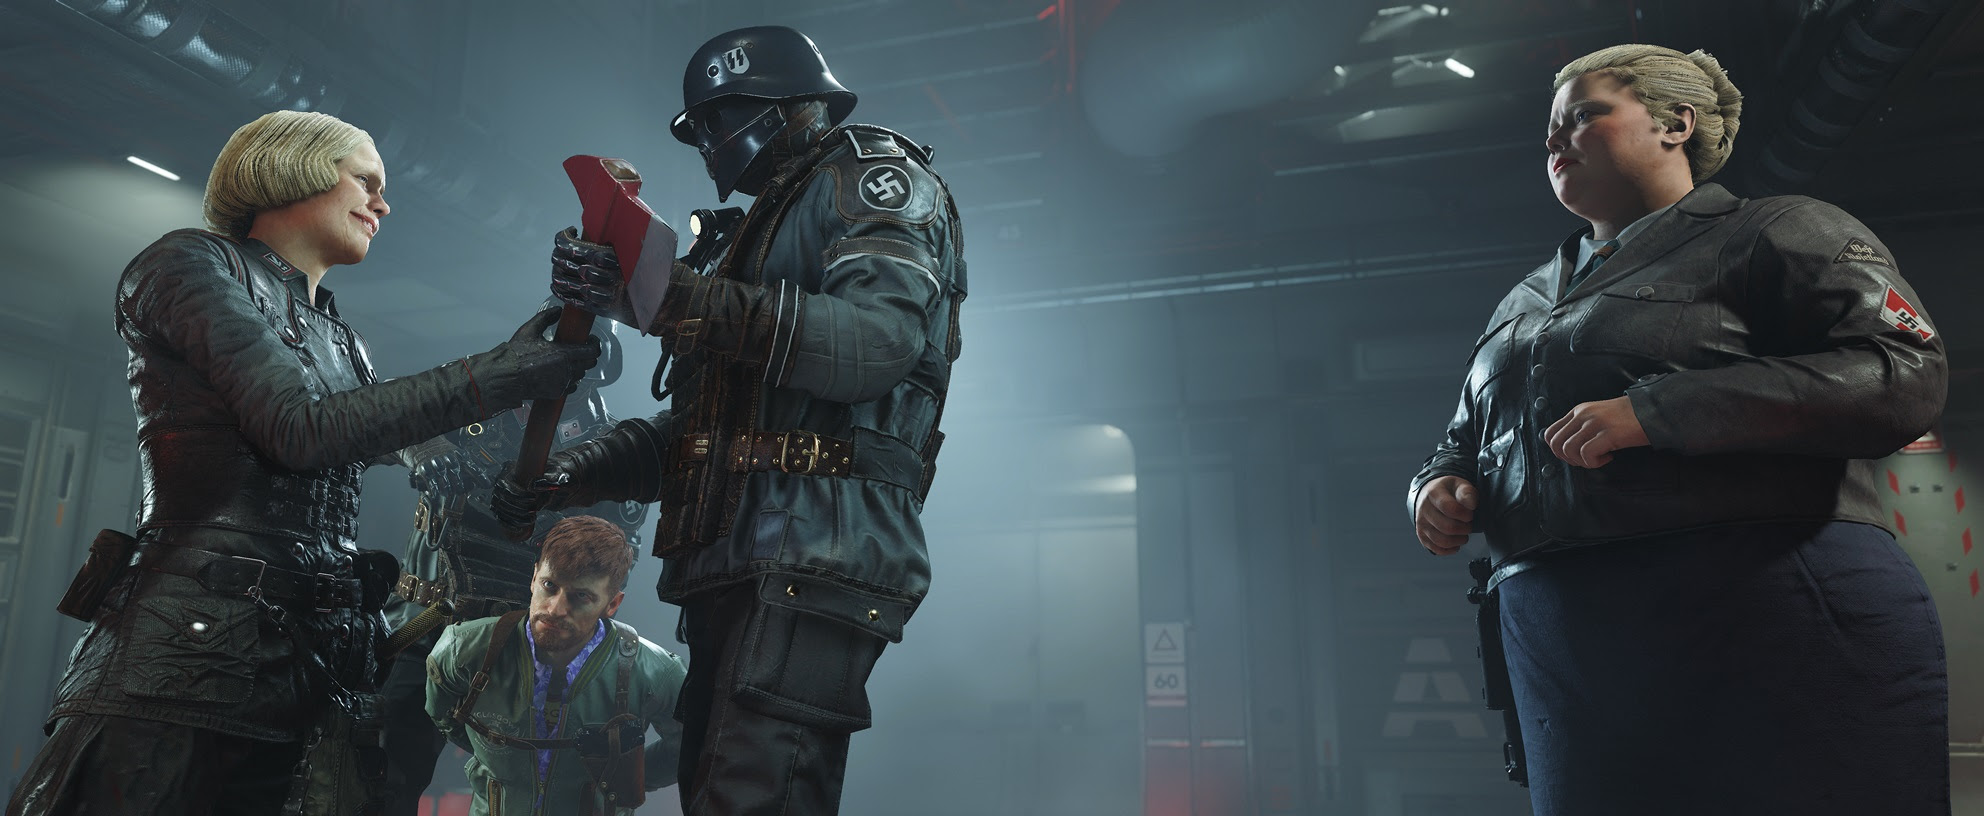 Wolfenstein II: The New Colossus really doesn't want you to eat the chocolate screenshot